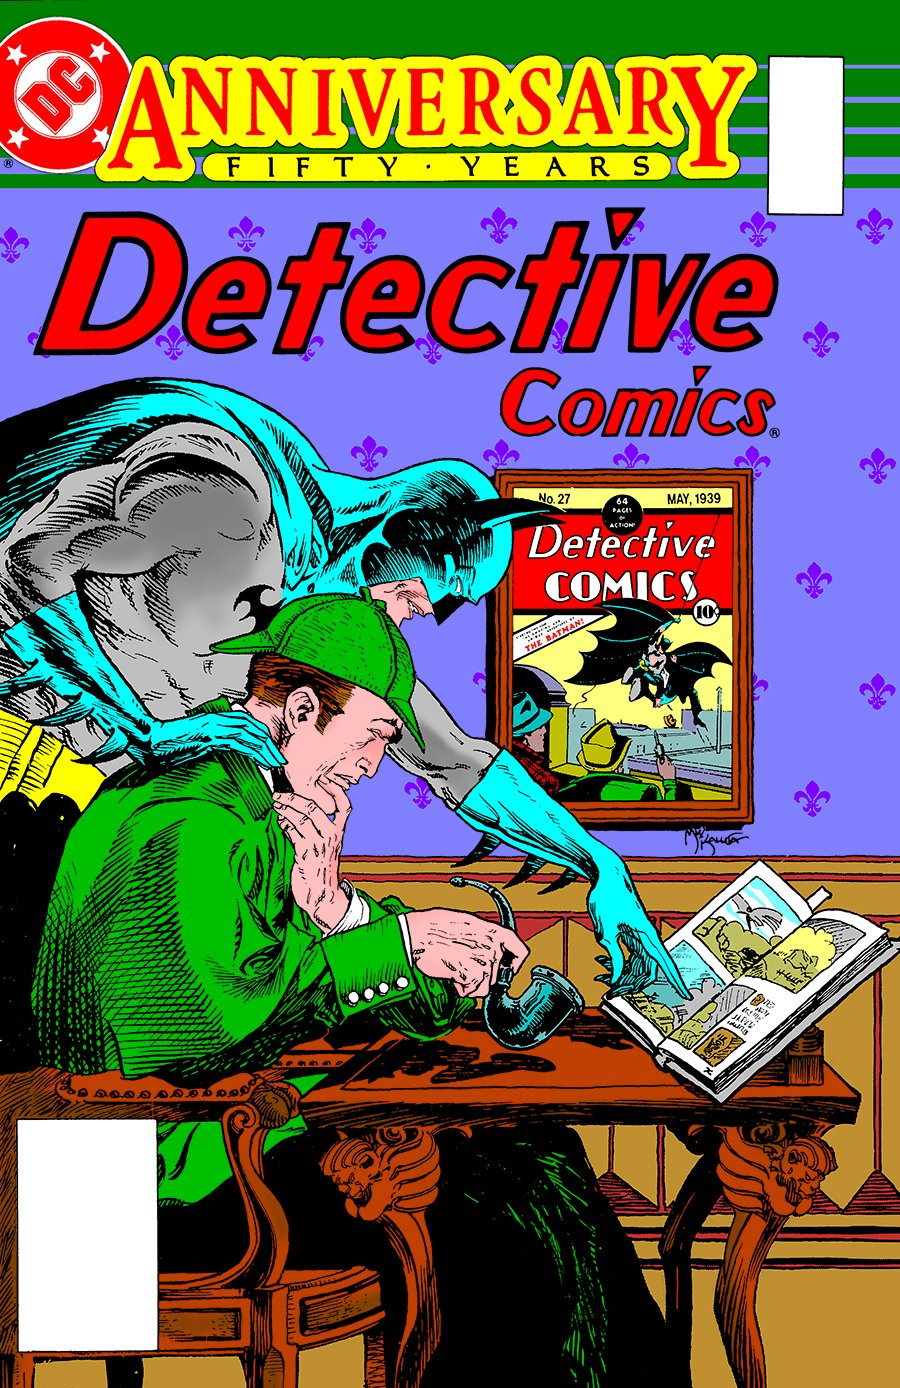 DCS GREATEST DETECTIVE STORIES EVER TOLD TP PRE-ORDER